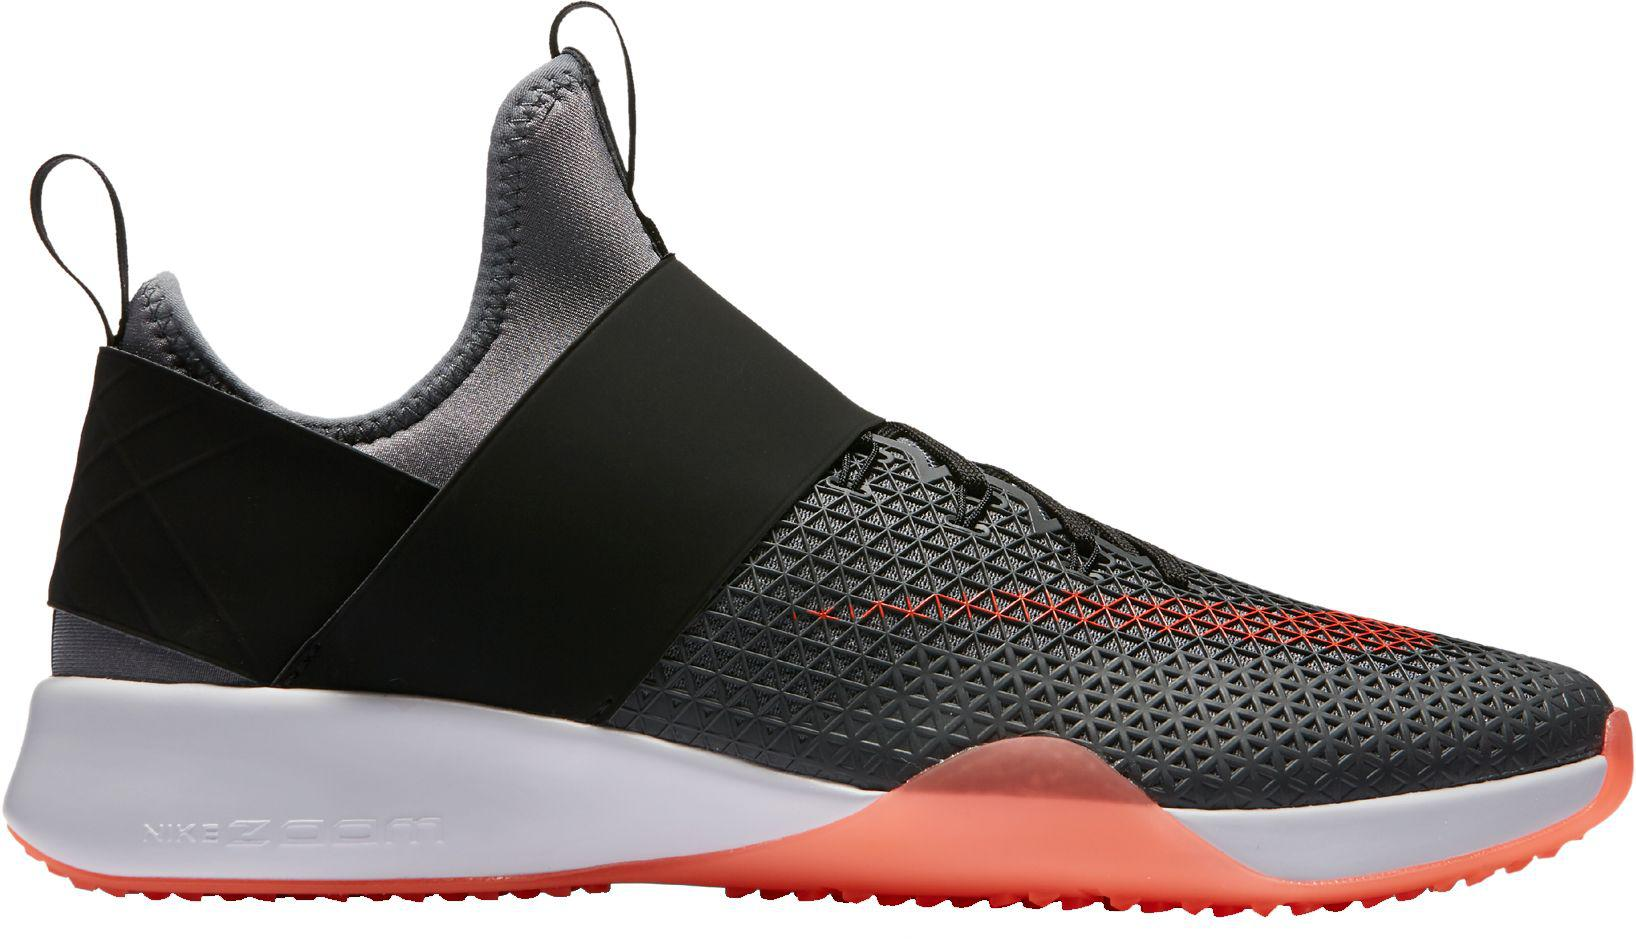 9c46c41a49bea2 Nike - Multicolor Air Zoom Strong Training Shoes for Men - Lyst